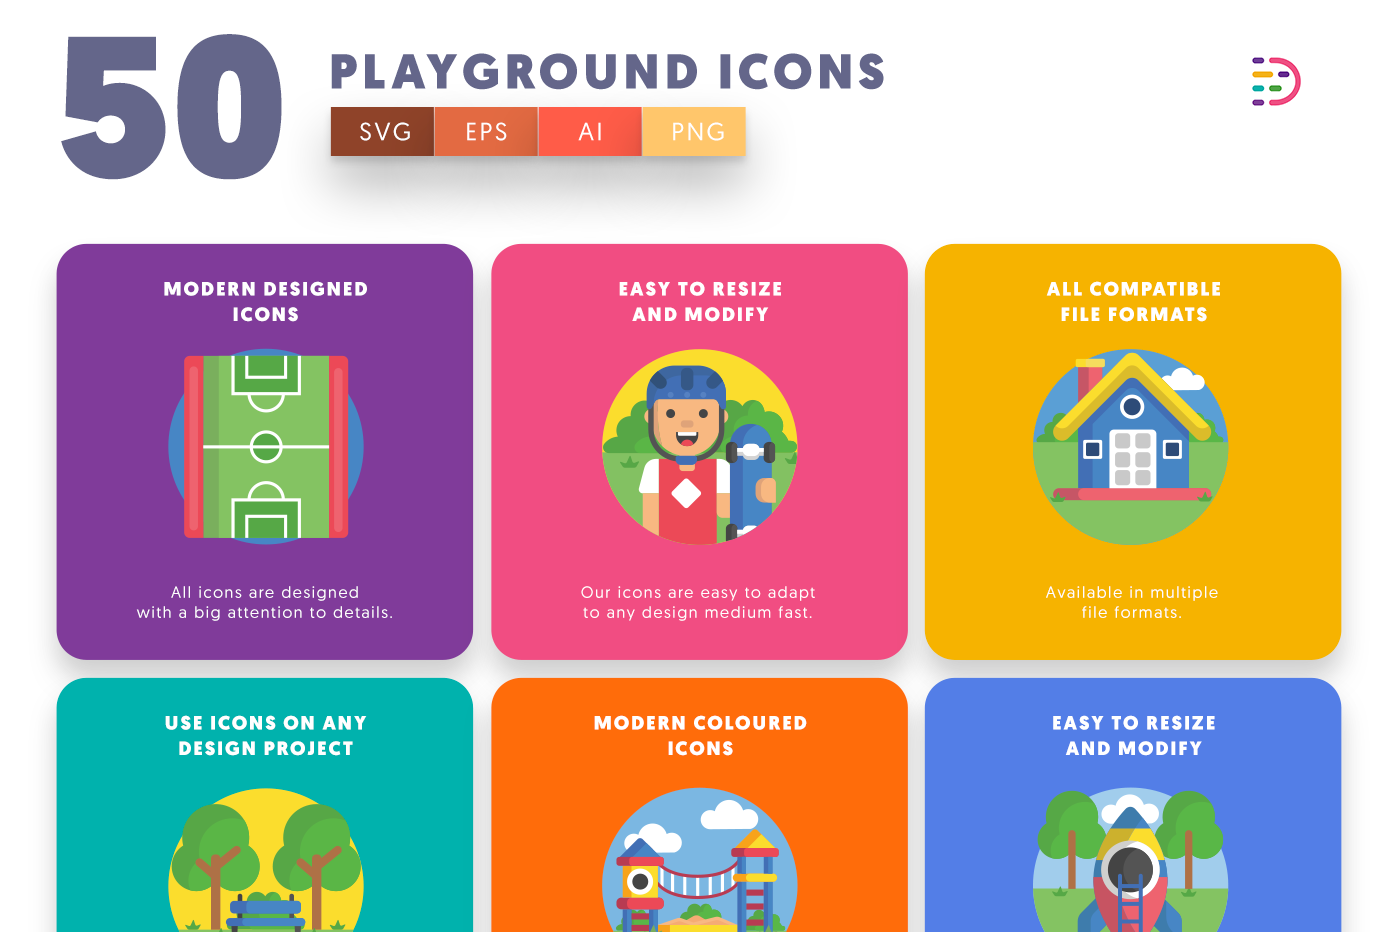 50 Playground Icons with colored backgrounds